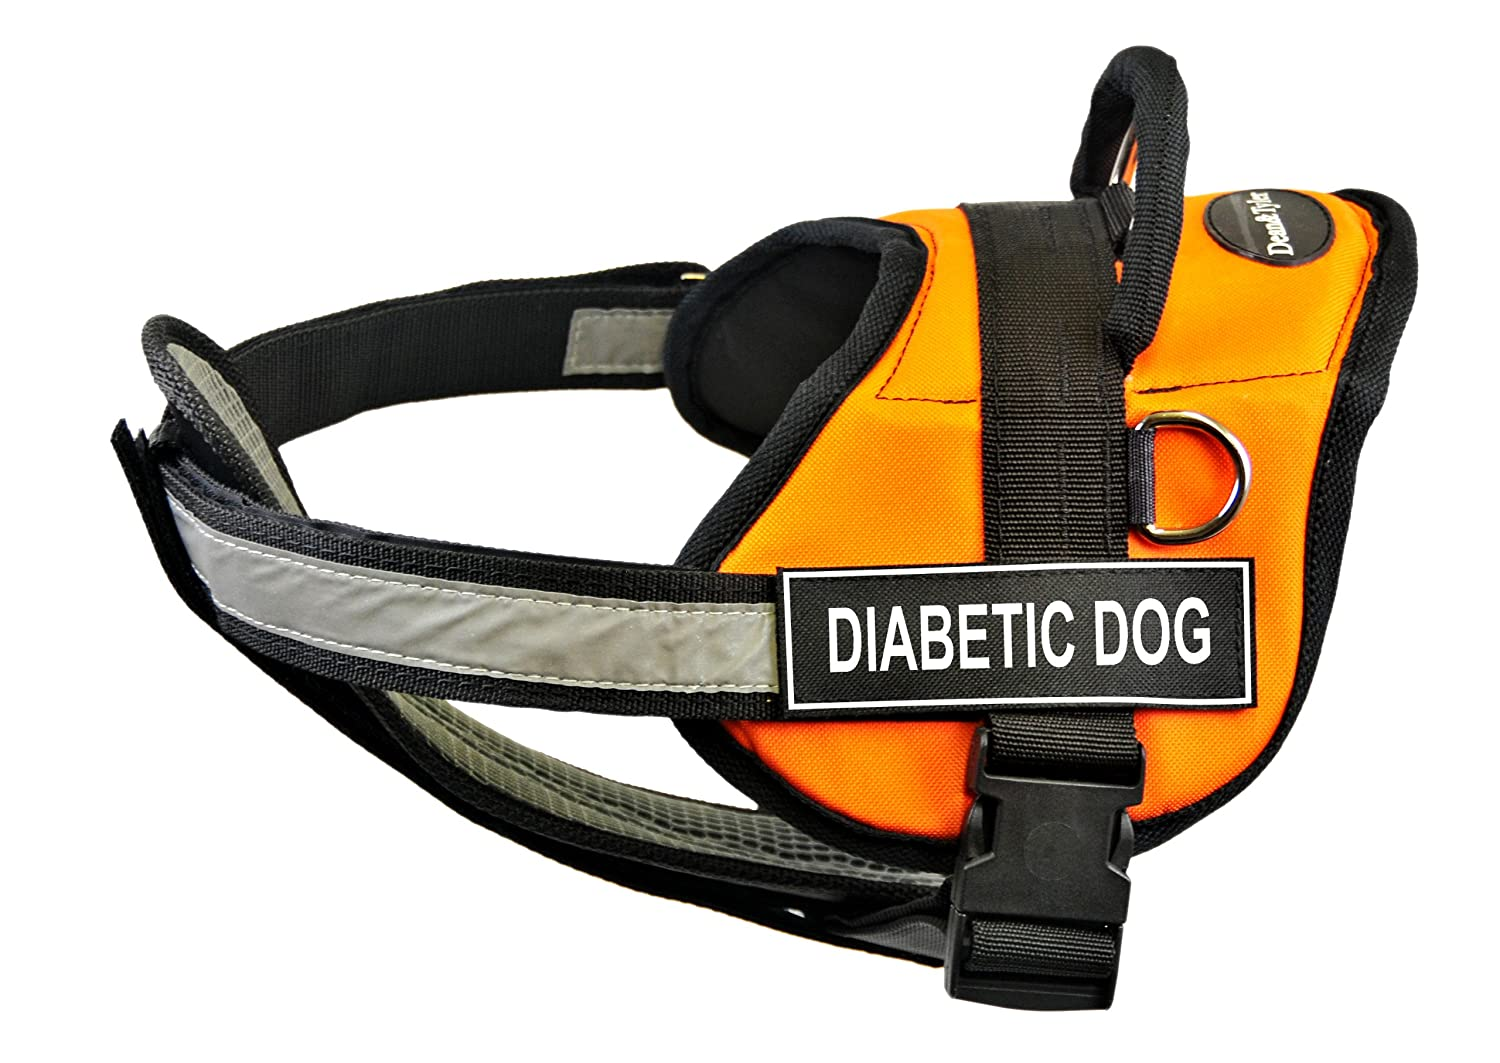 Dean & Tyler 25-Inch to 34-Inch Diabetic Dog Harness with Padded Reflective Chest Straps, Small, orange Black